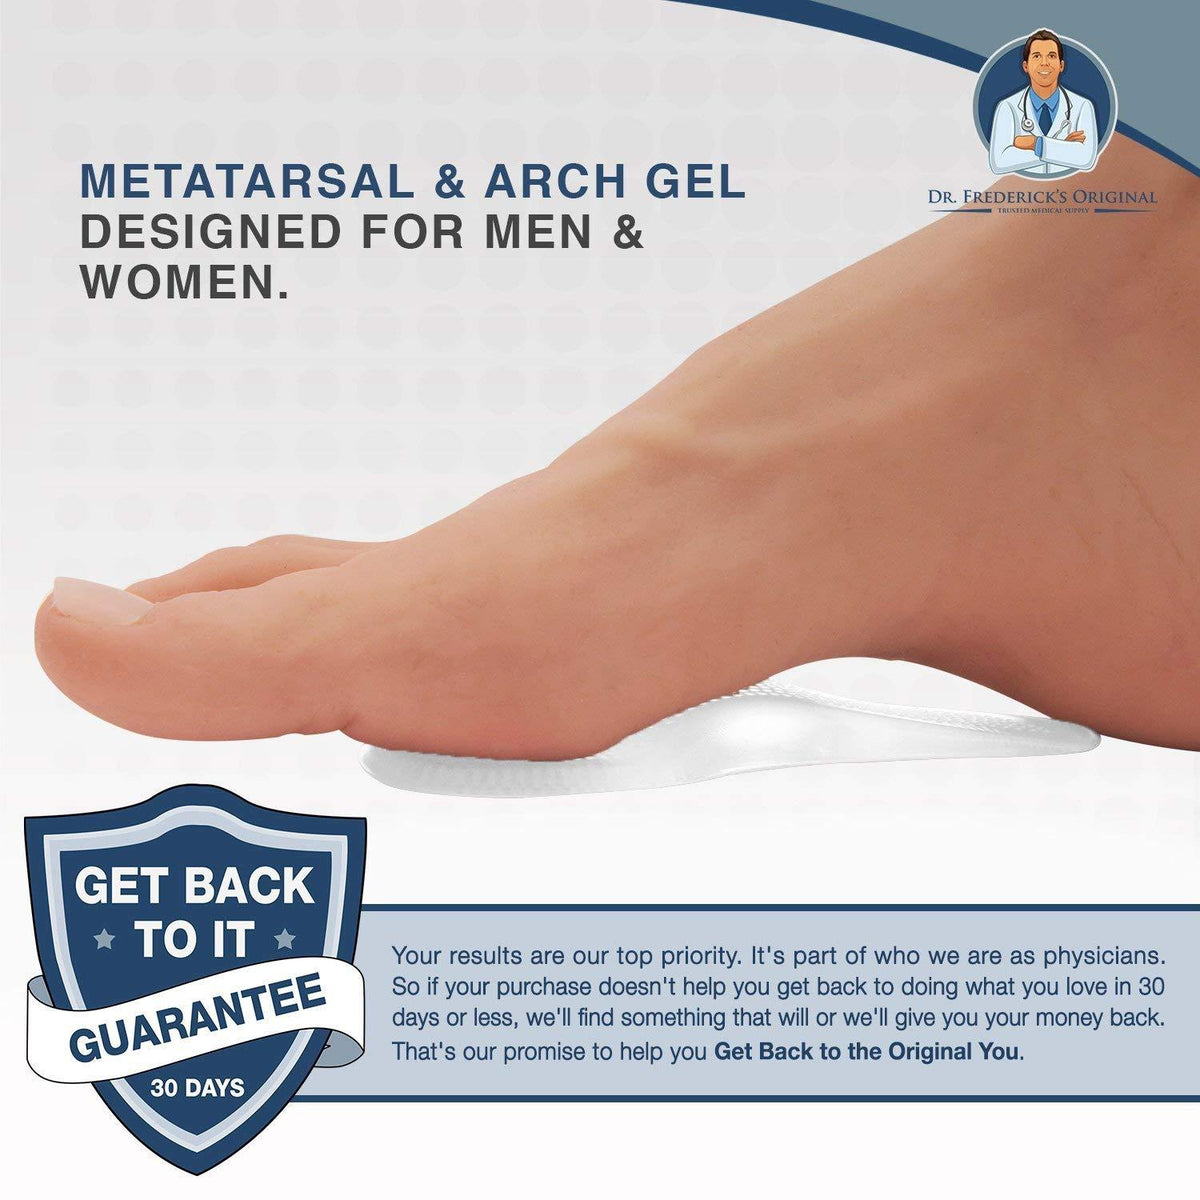 Dr. Frederick's Original Self-Adhesive Metatarsal & Arch Support Insole Gel Pads -- 2 Pieces - for Metatarsal and Arch Support Foot Pain Dr. Frederick's Original